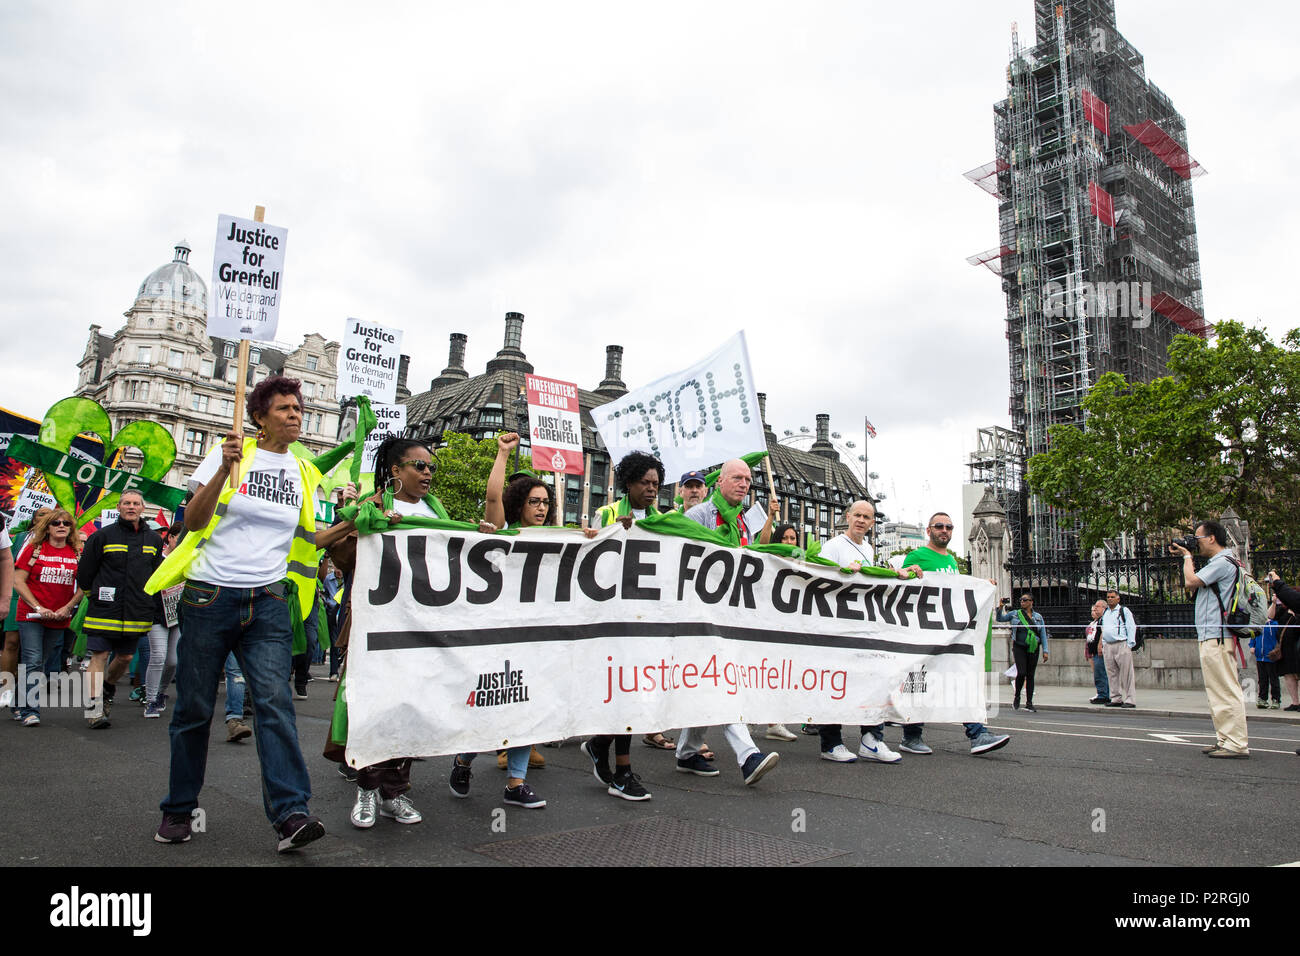 London, UK. 16th June, 2018. Hundreds of people take part in a ...